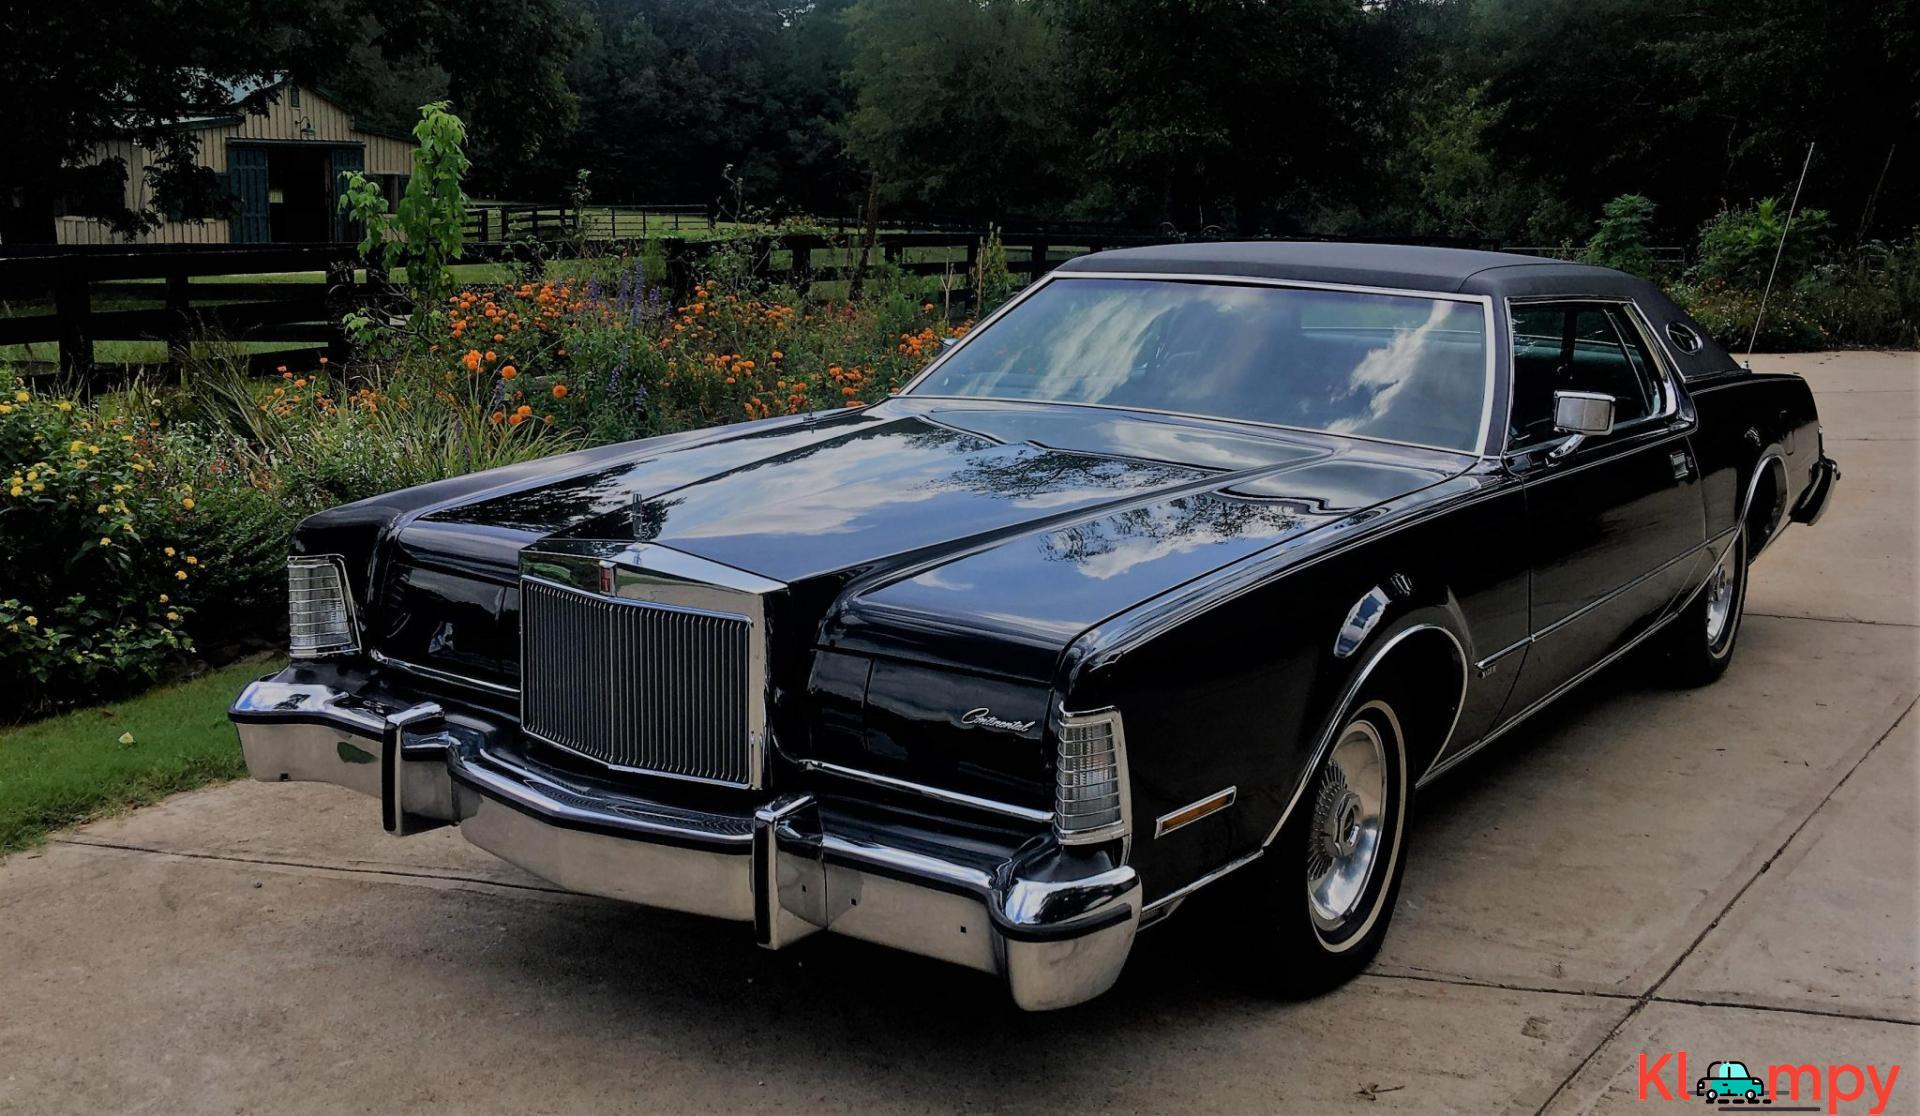 1974 Lincoln Continental Mark IV Coupe V8 - 3/20